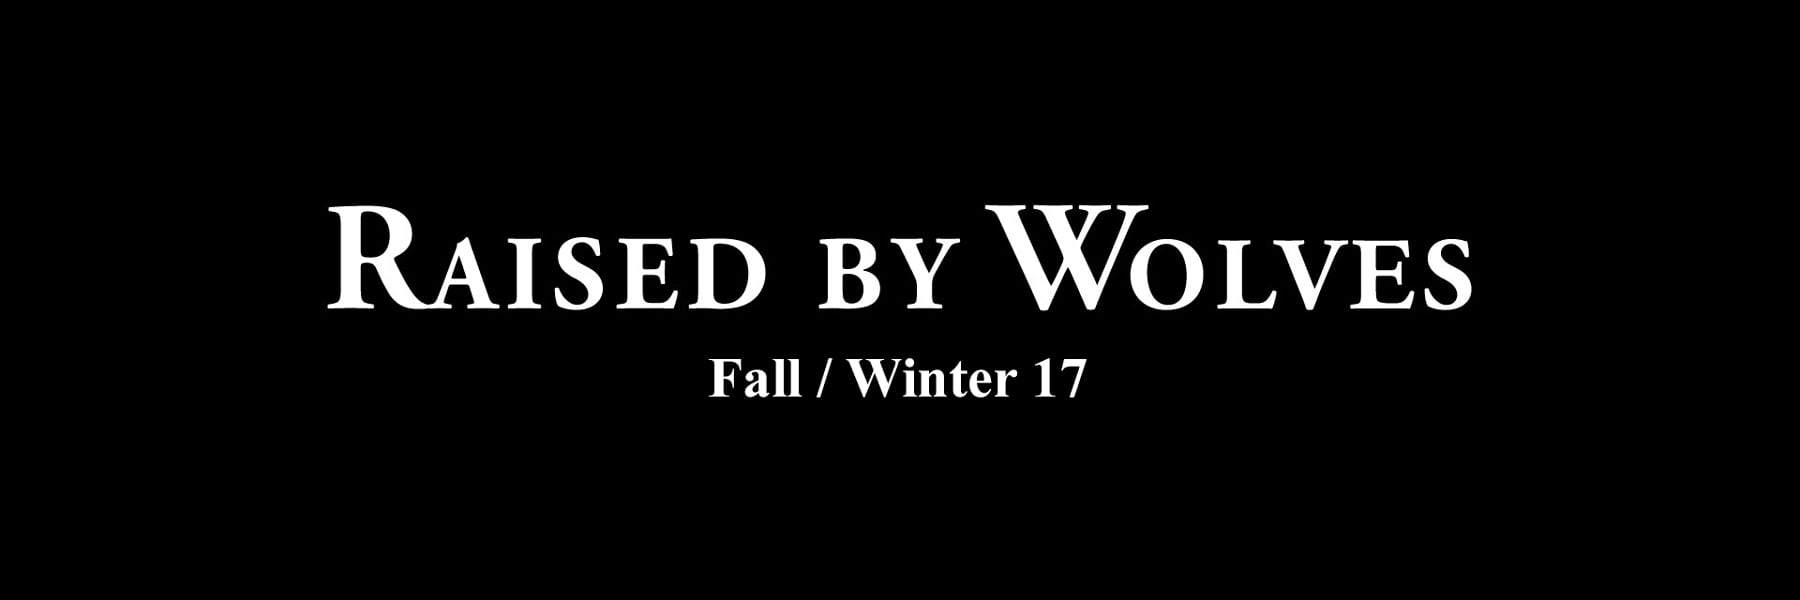 RAISED BY WOLVES FALL/WINTER 17